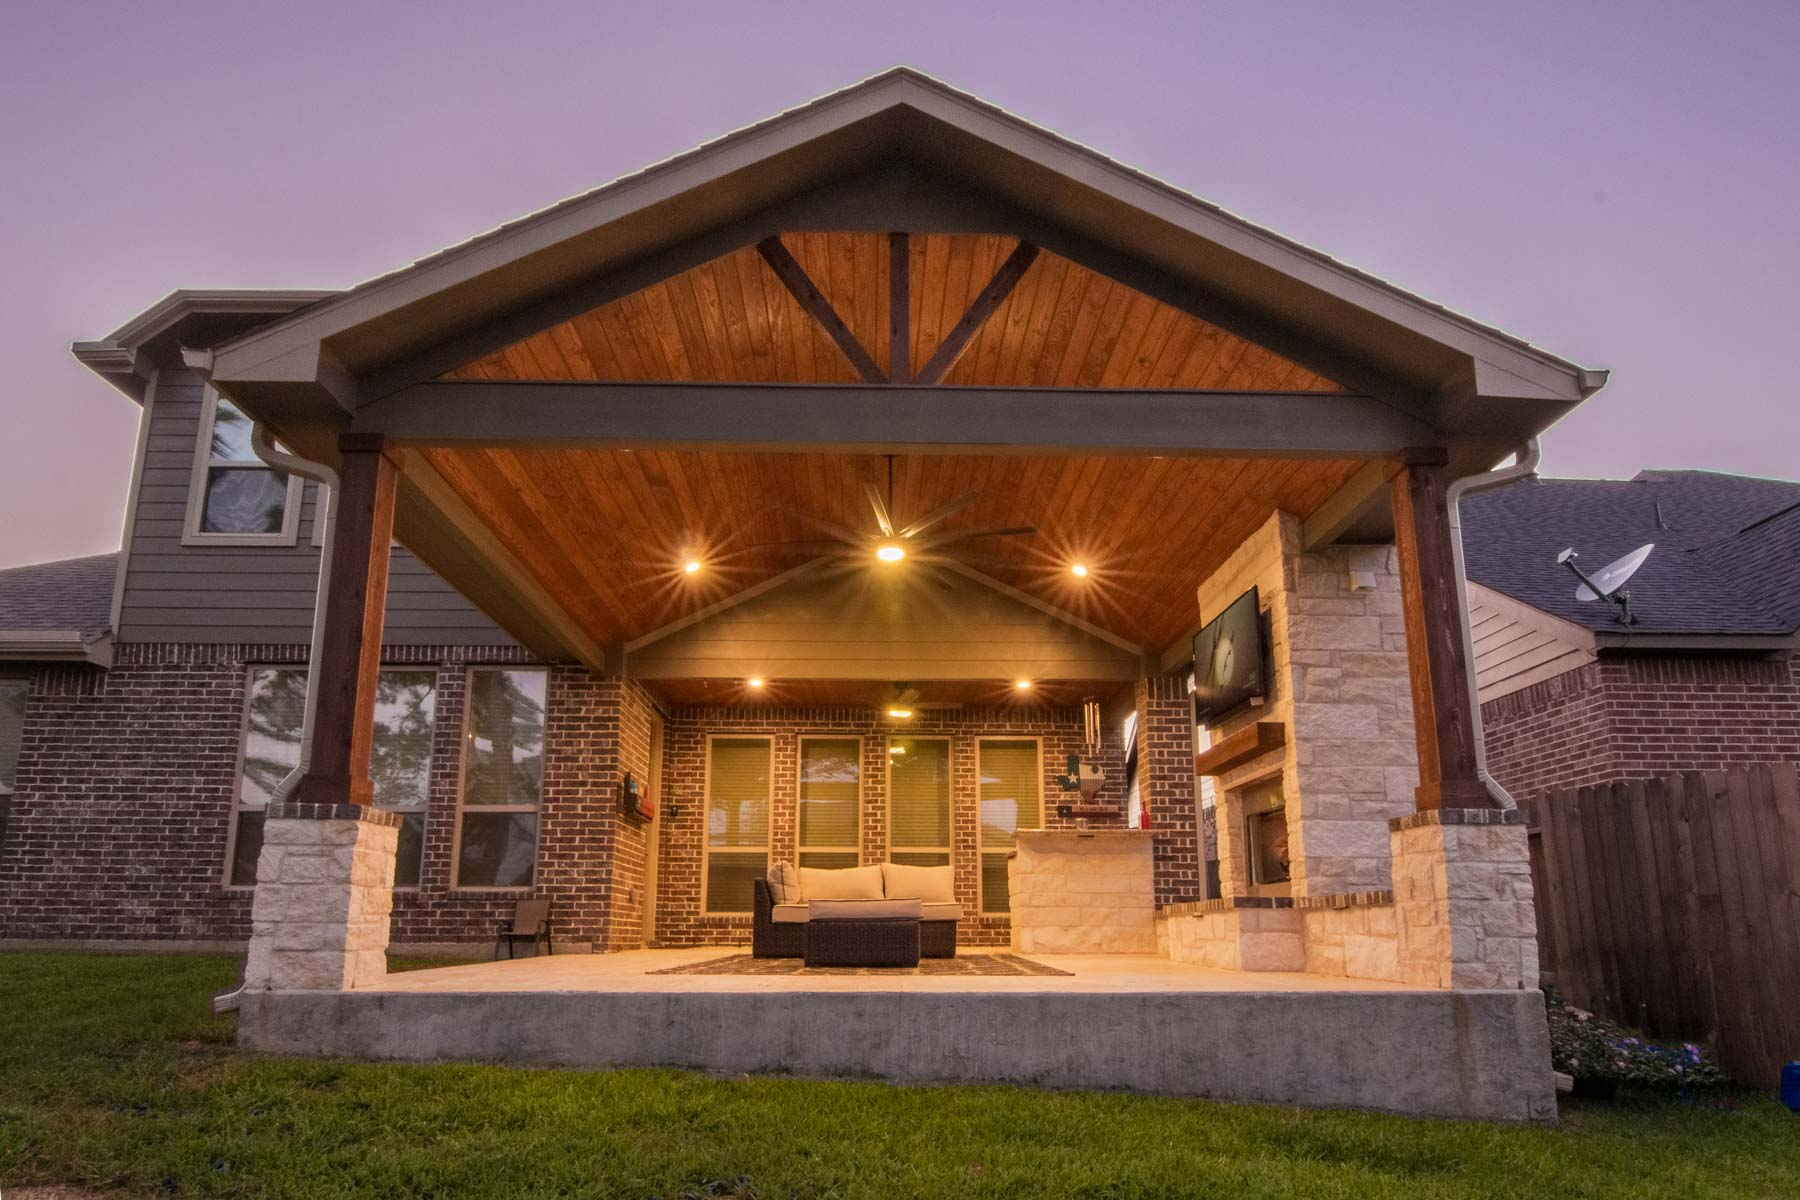 Patio Cover and Fireplace (Cypress Tx) - HHI Patio Covers on Patio Cover Ideas Wood id=70790